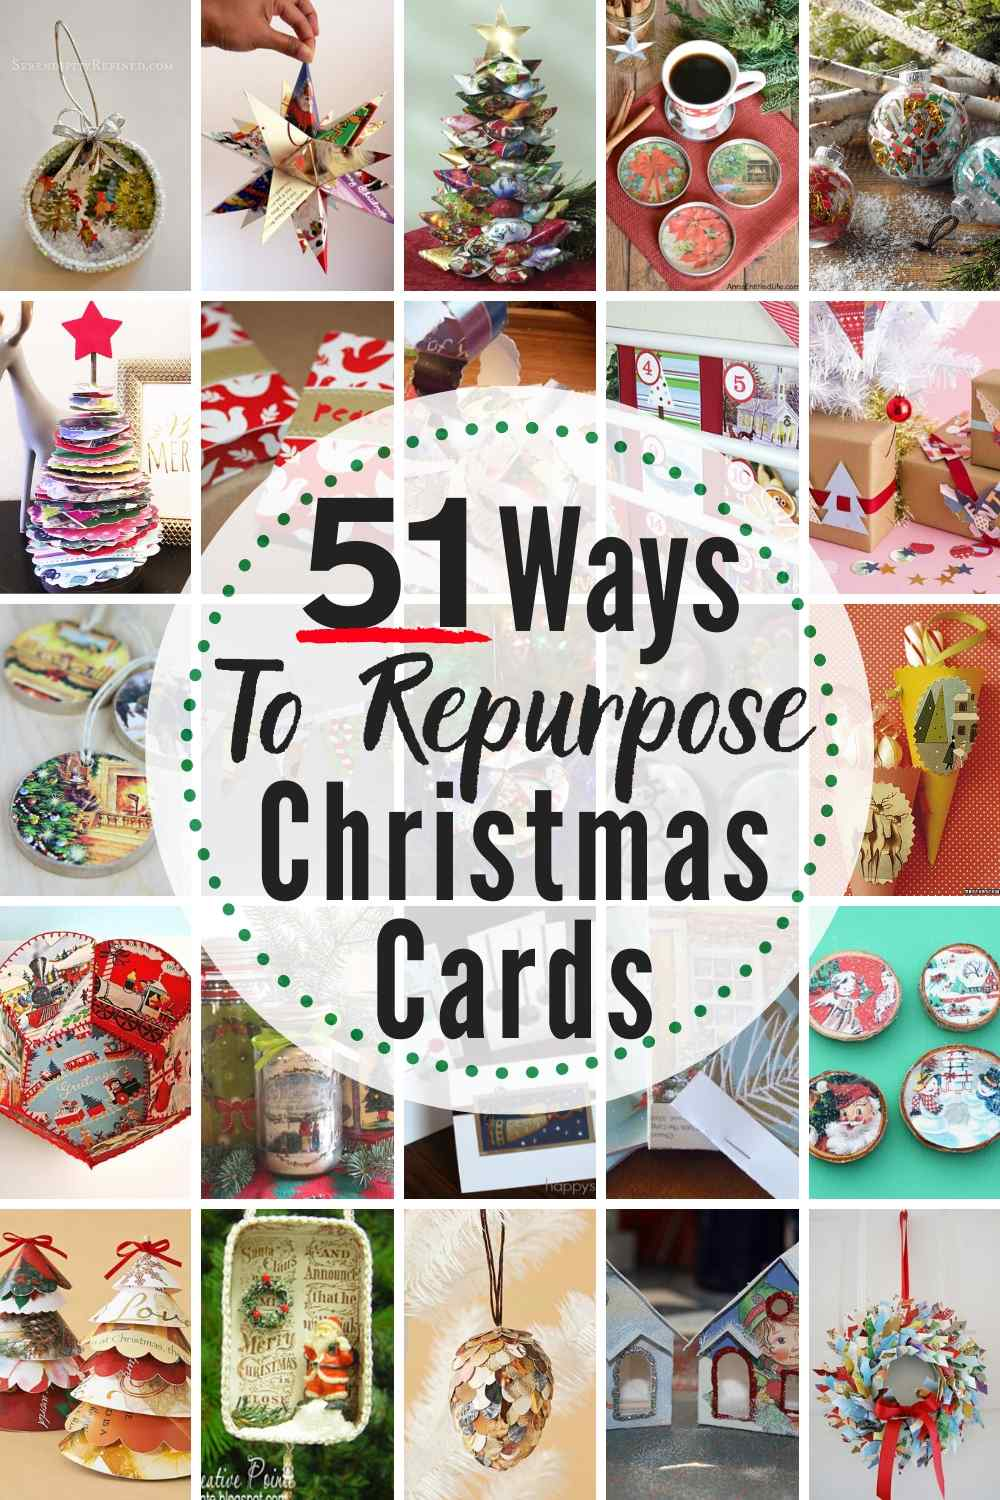 51 EPIC Ways To Reuse & Repurpose Old Christmas Cards Right Now!